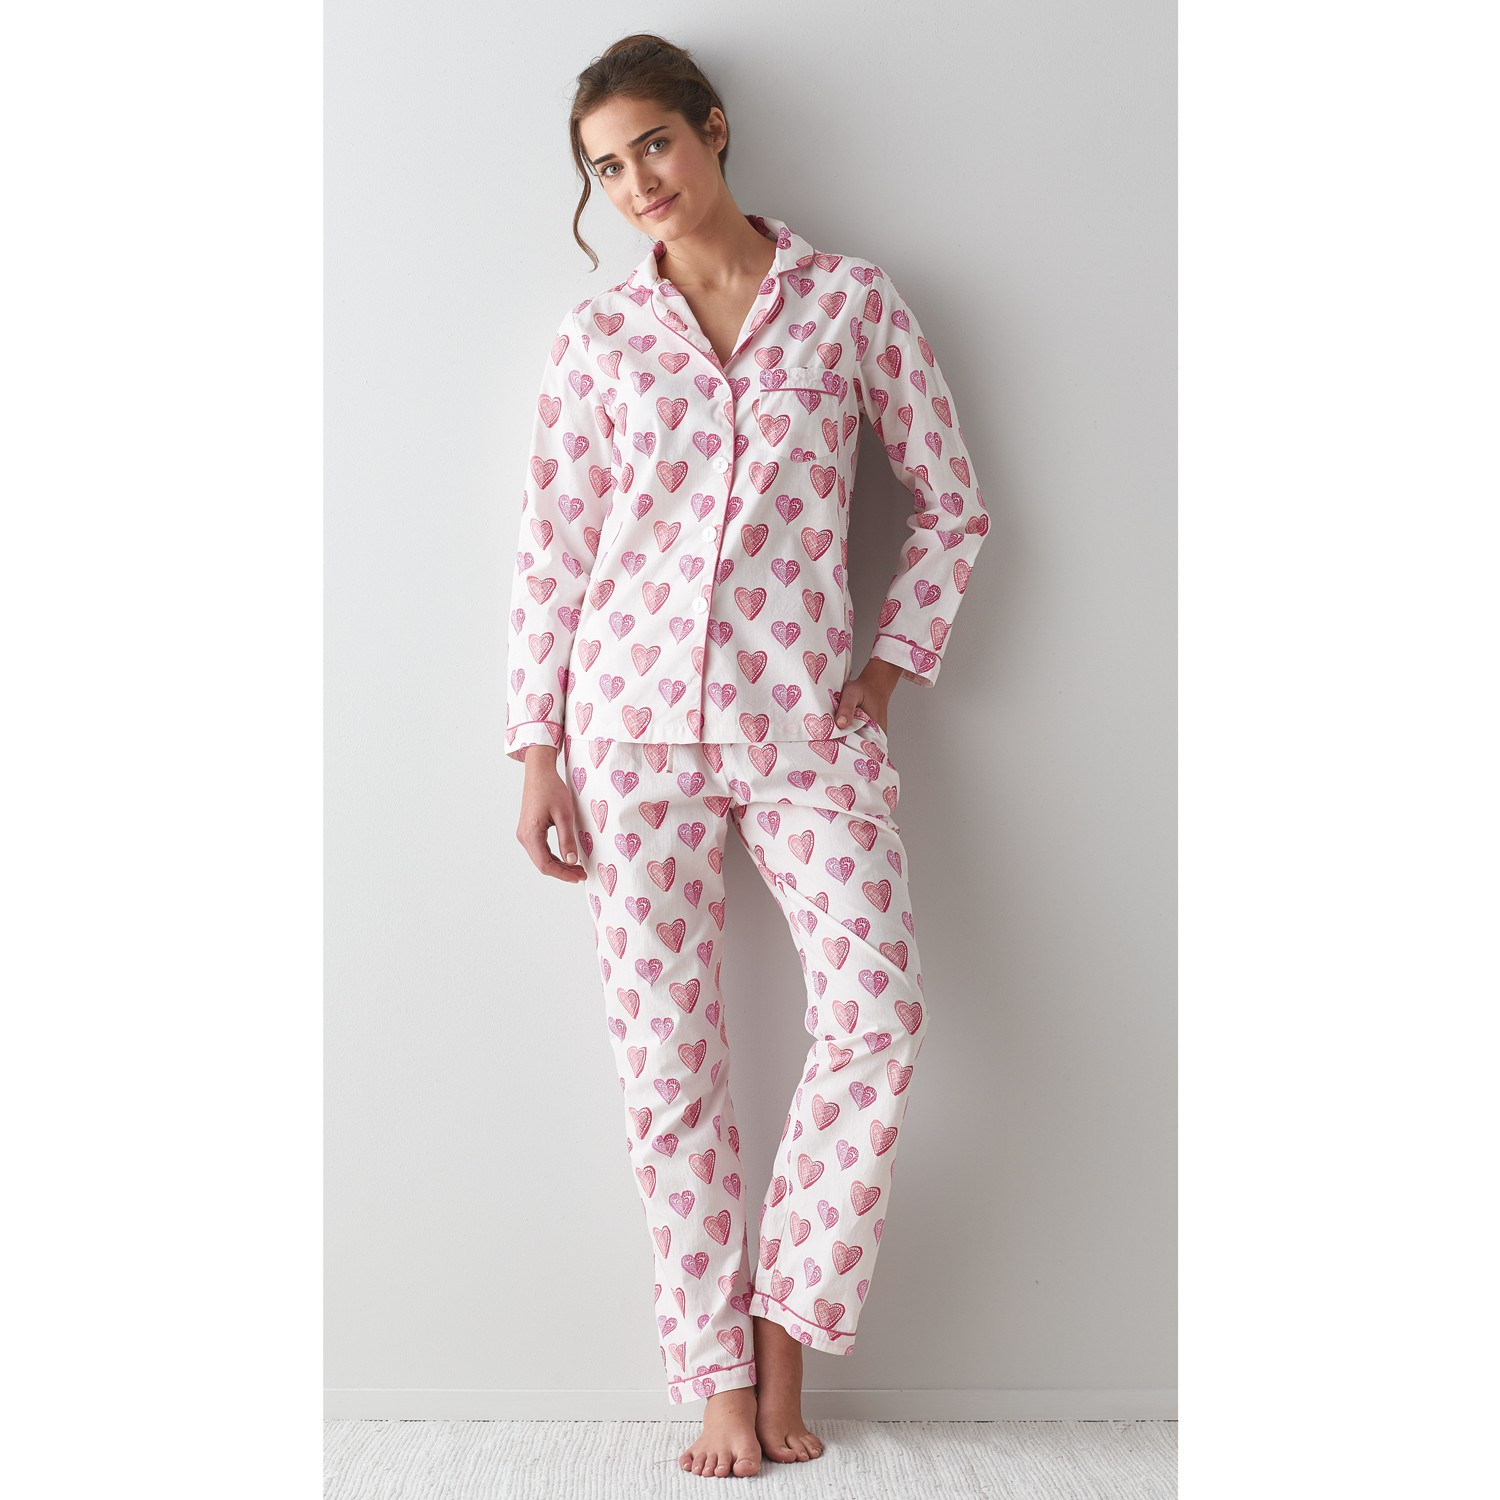 Printed Woven Cotton Poplin Pajama Set – Heart To Heart